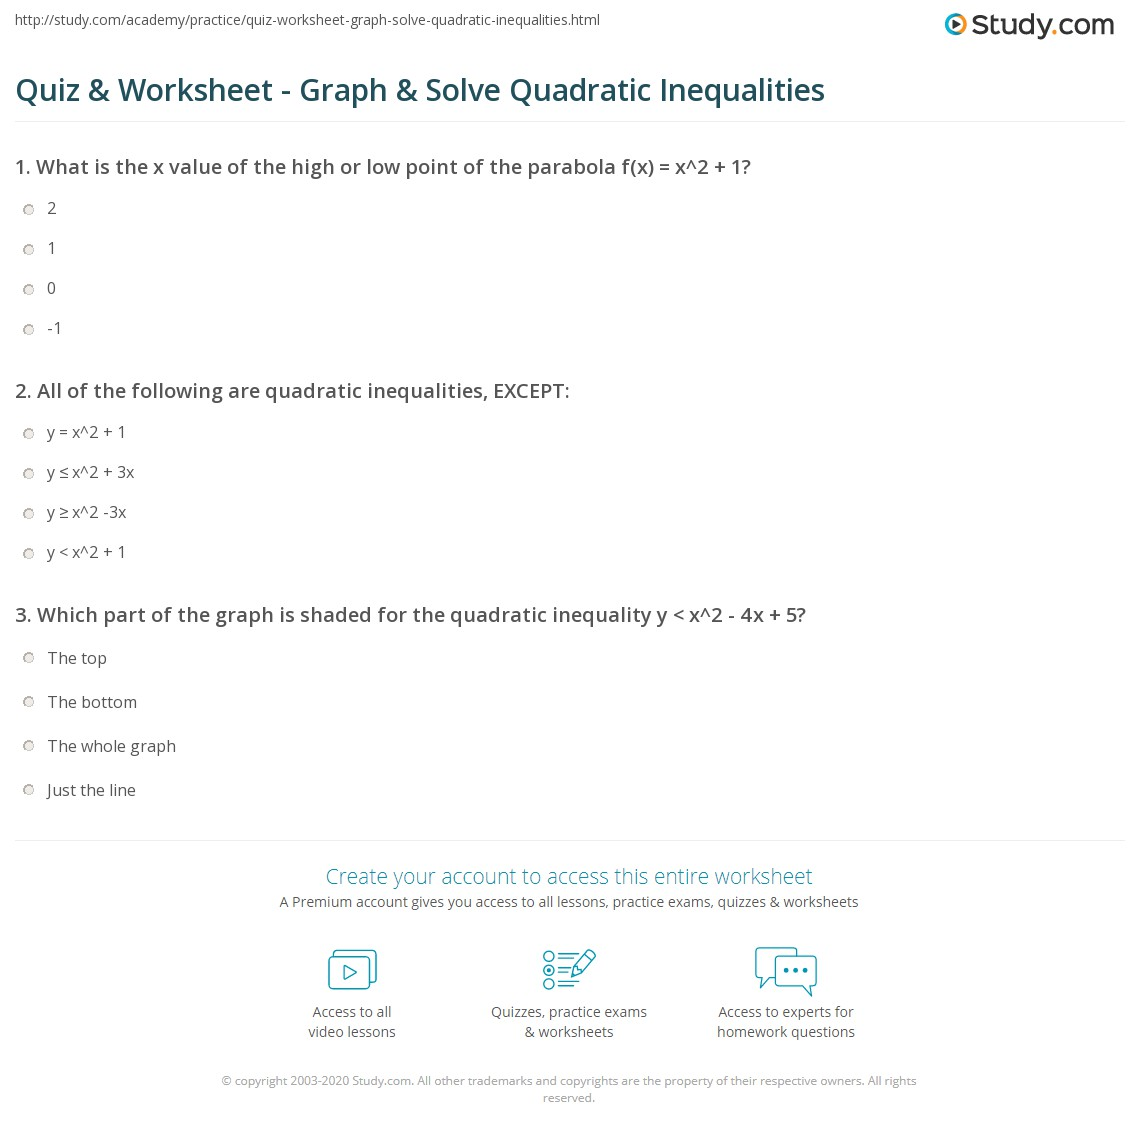 quiz worksheet graph solve quadratic inequalities. Black Bedroom Furniture Sets. Home Design Ideas